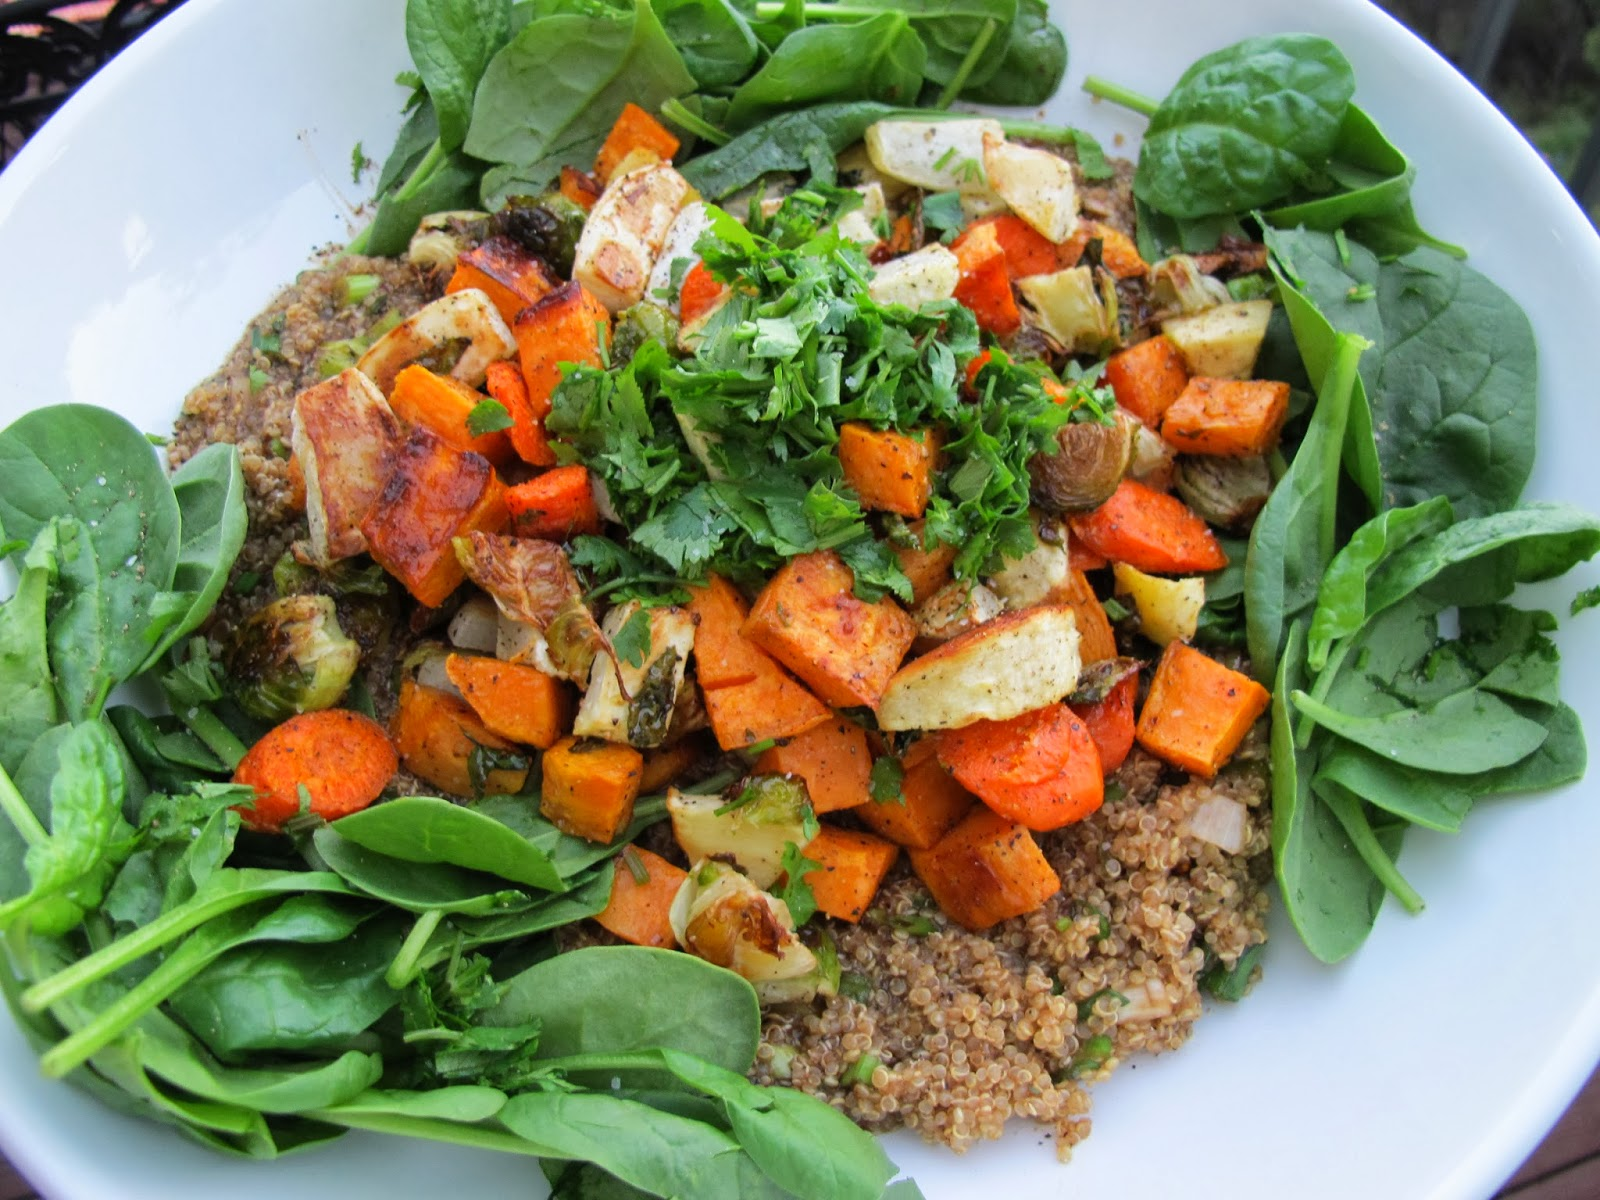 ... Quinoa Salad with Roasted Autumn Vegetables or a Vegan Thanksgiving